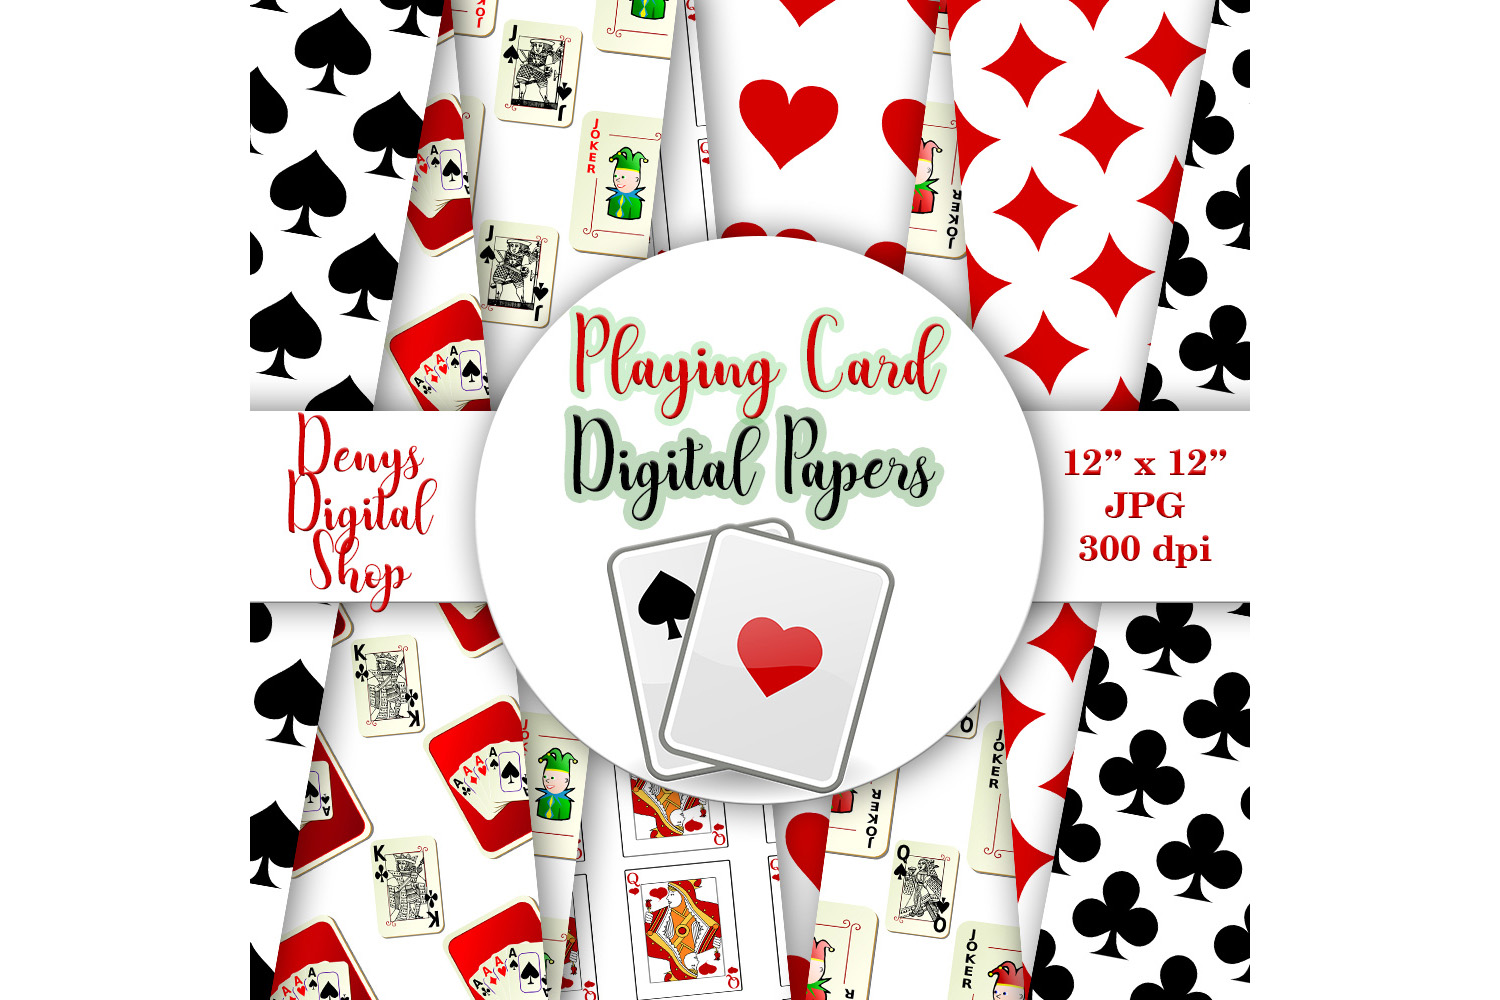 Playing Card Suits,Digital Wall,Playing Cards Pattern,50OFF example image 1